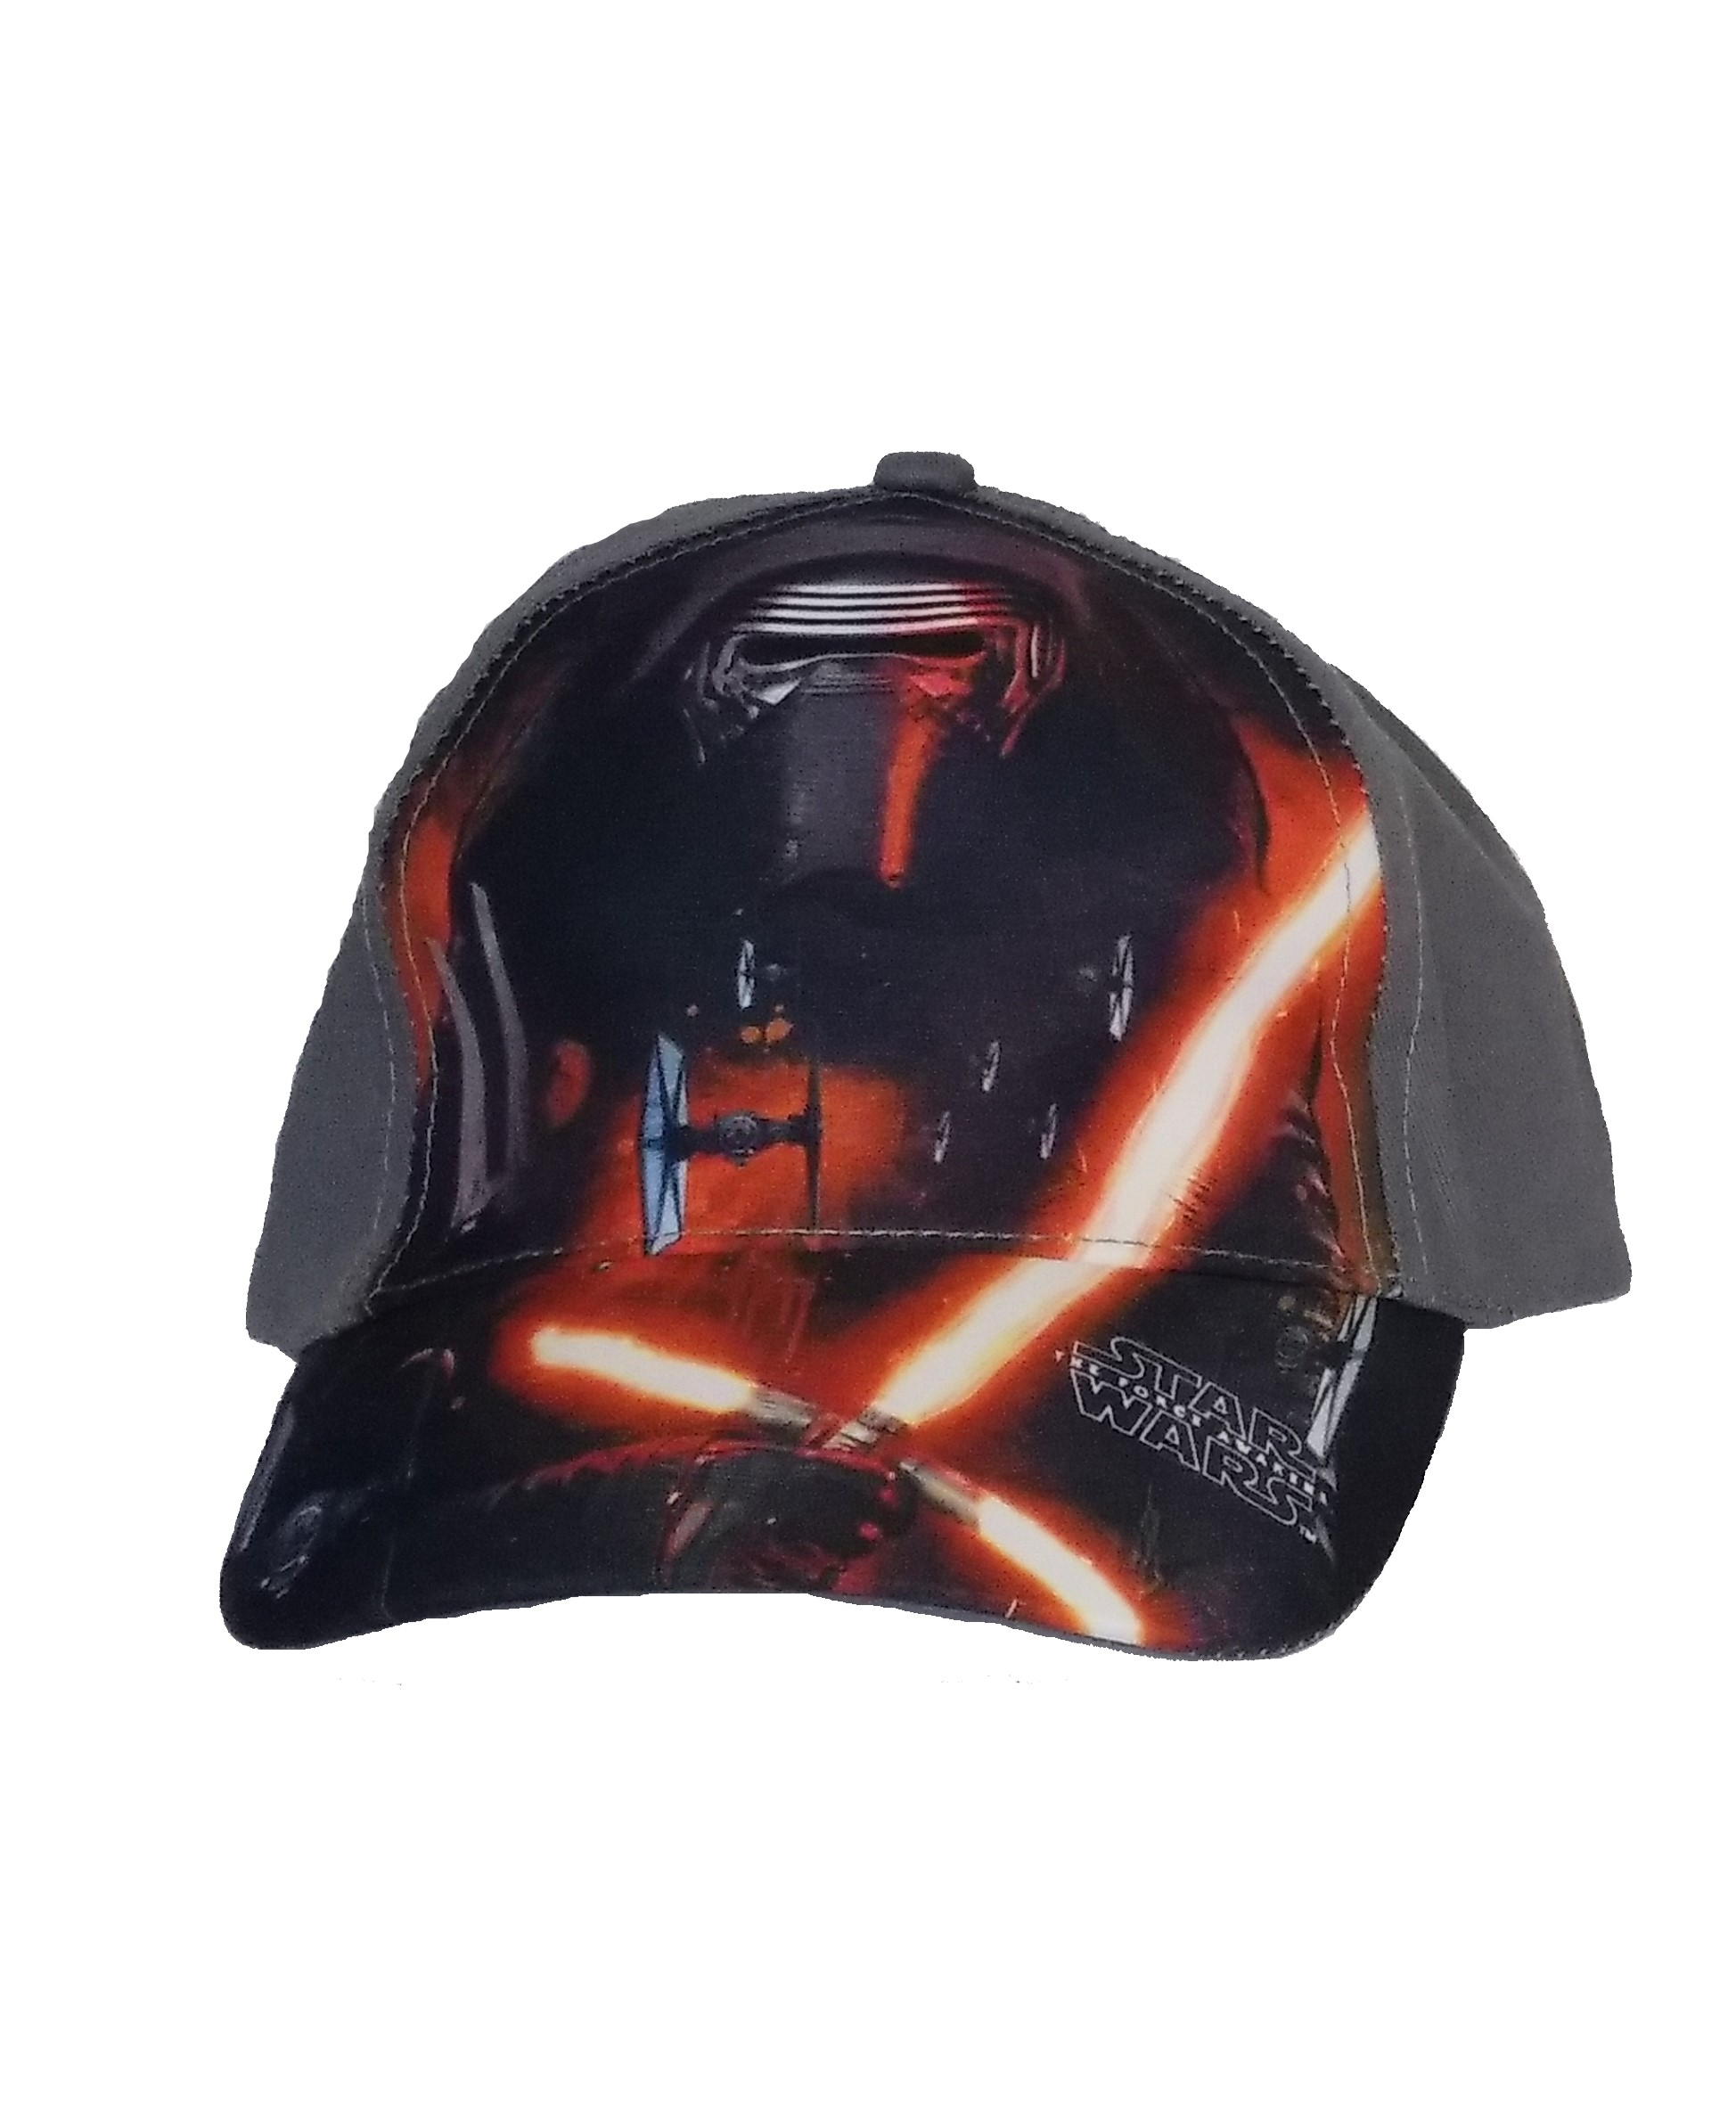 Star Wars The Force Awakens Kappe Grau 52